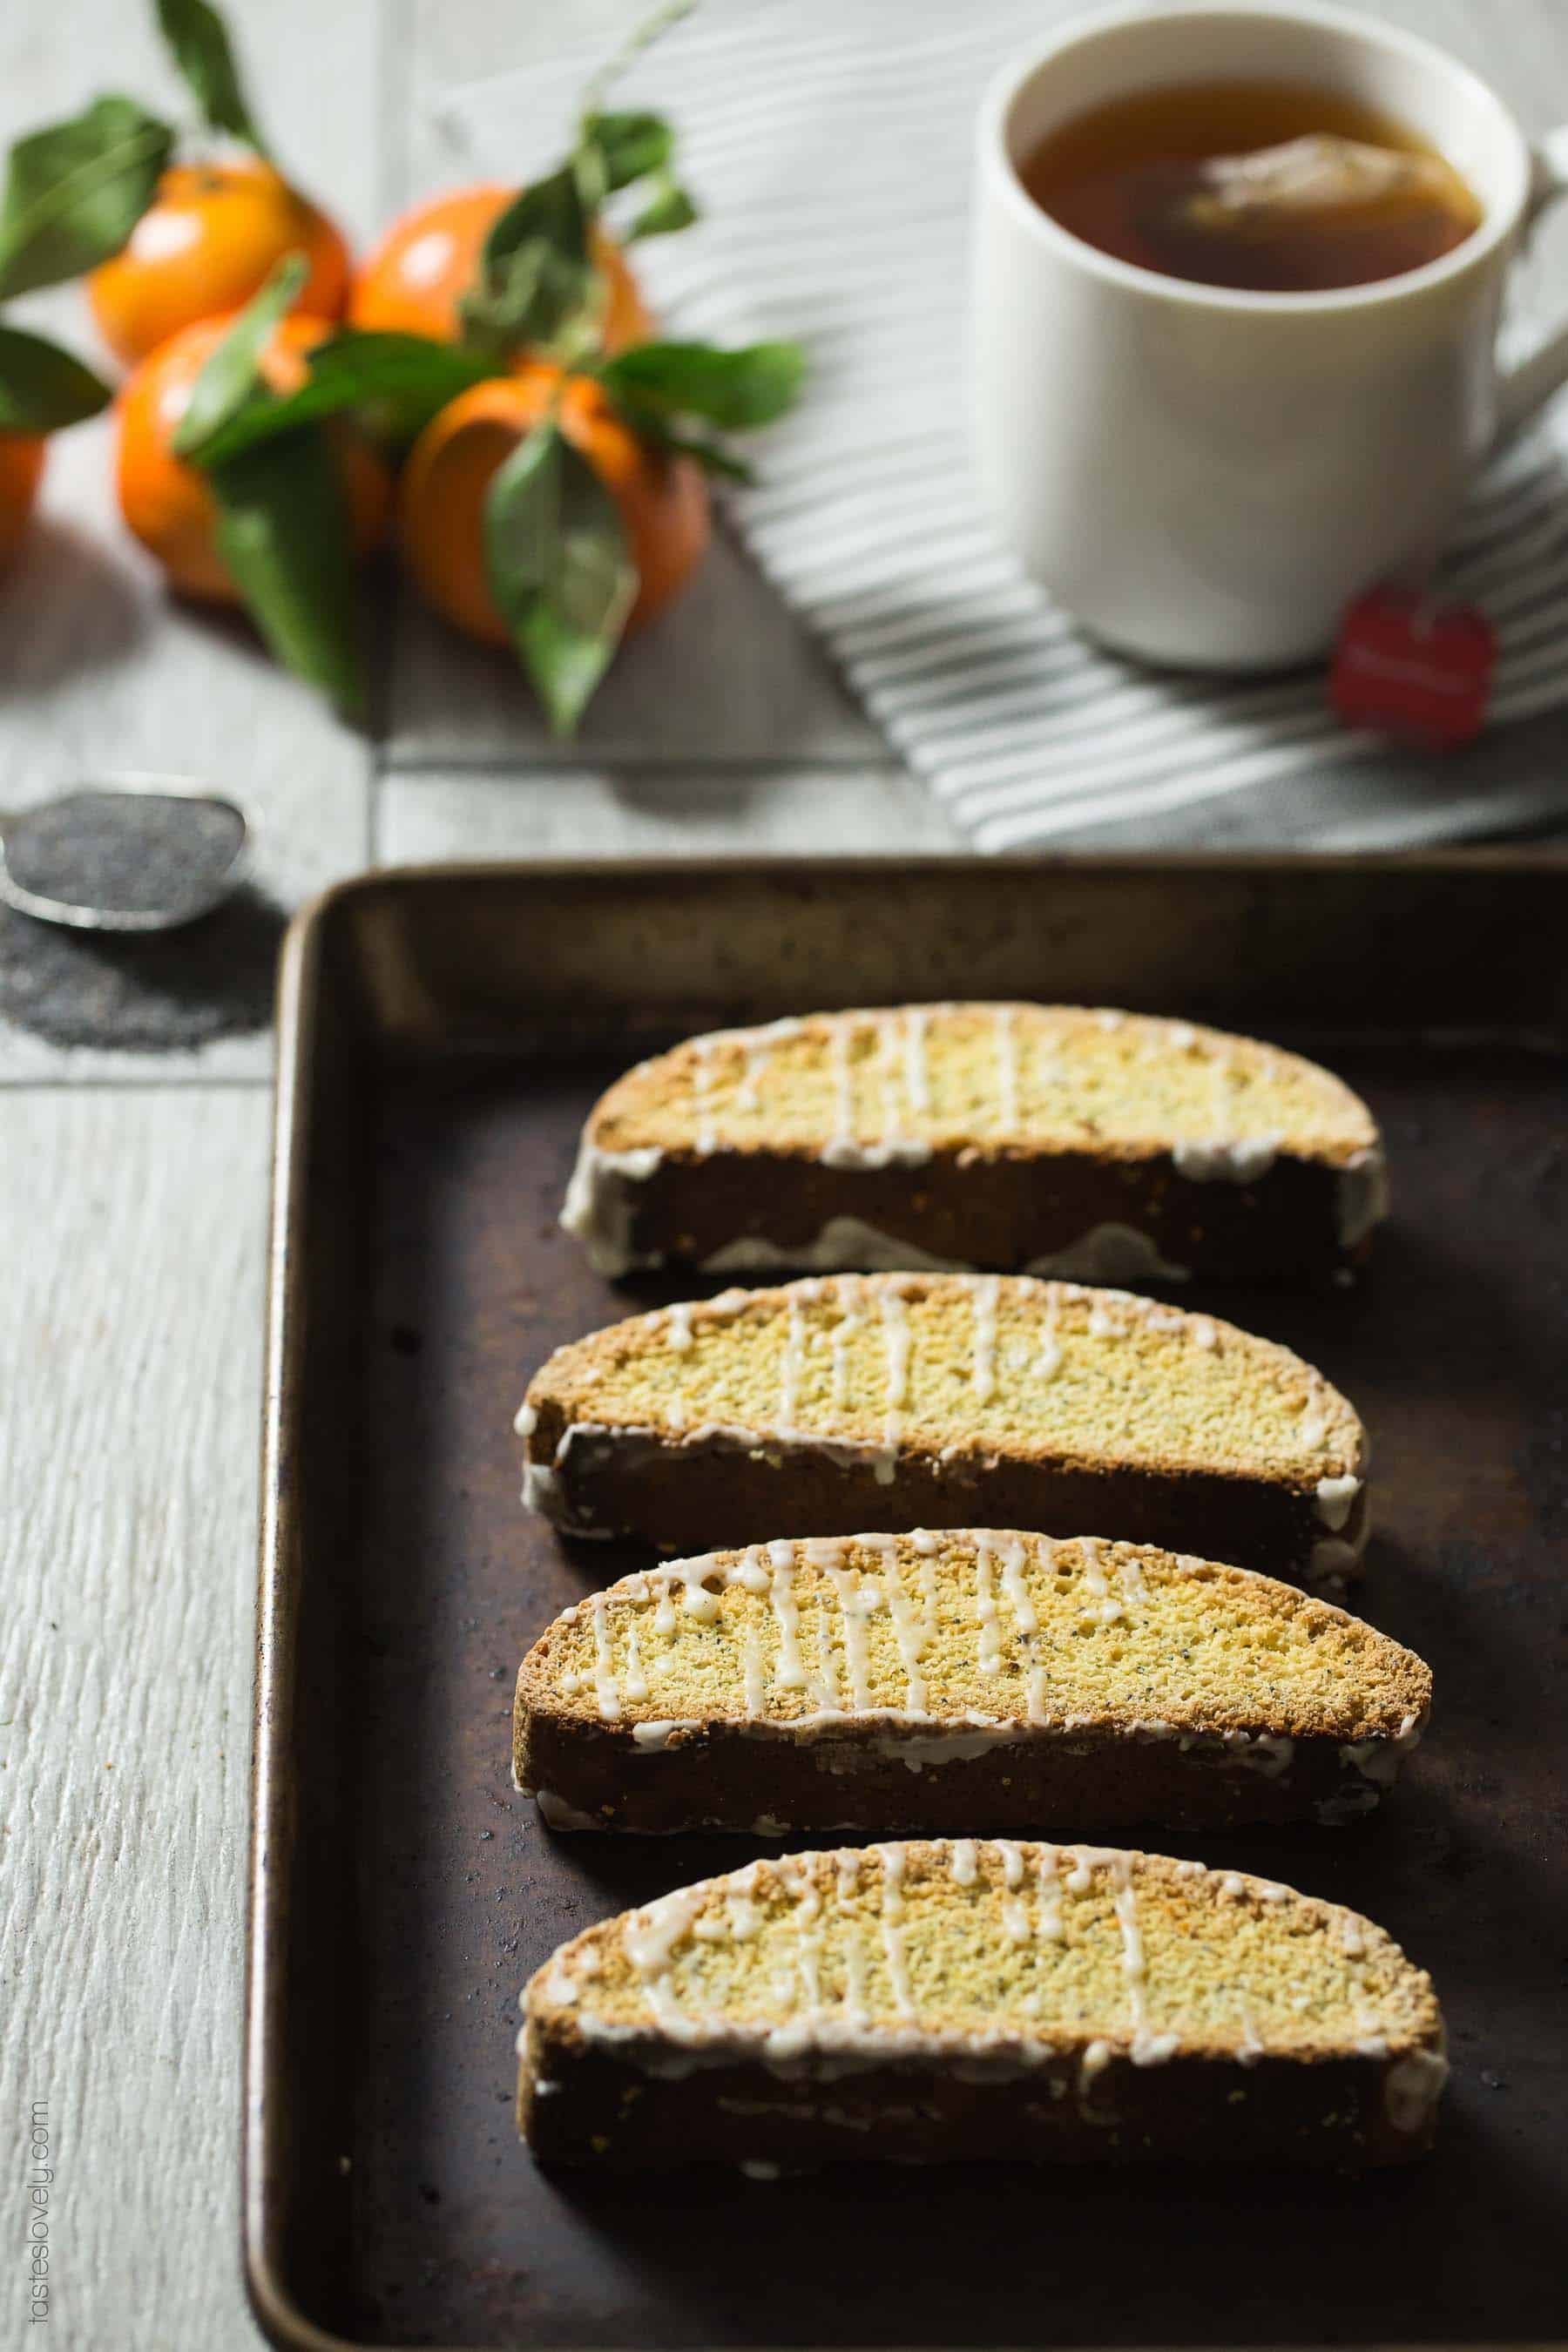 Orange Poppy Seed Biscotti - made with no butter so they're dairy free!